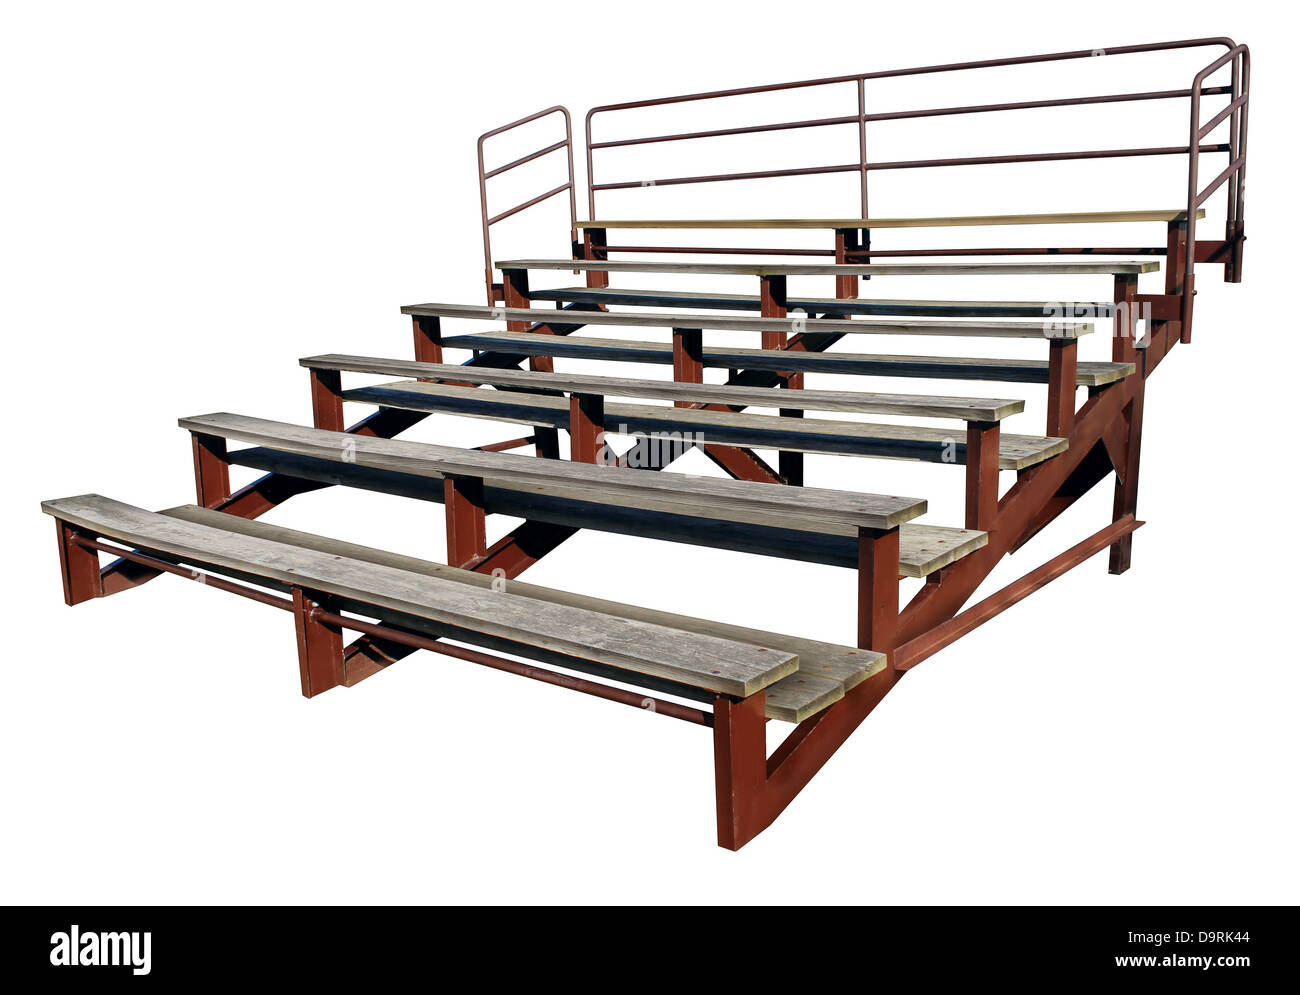 Empty bleachers or stands isolated on a white background as a symbol of school sports and fan support for small - Stock Image